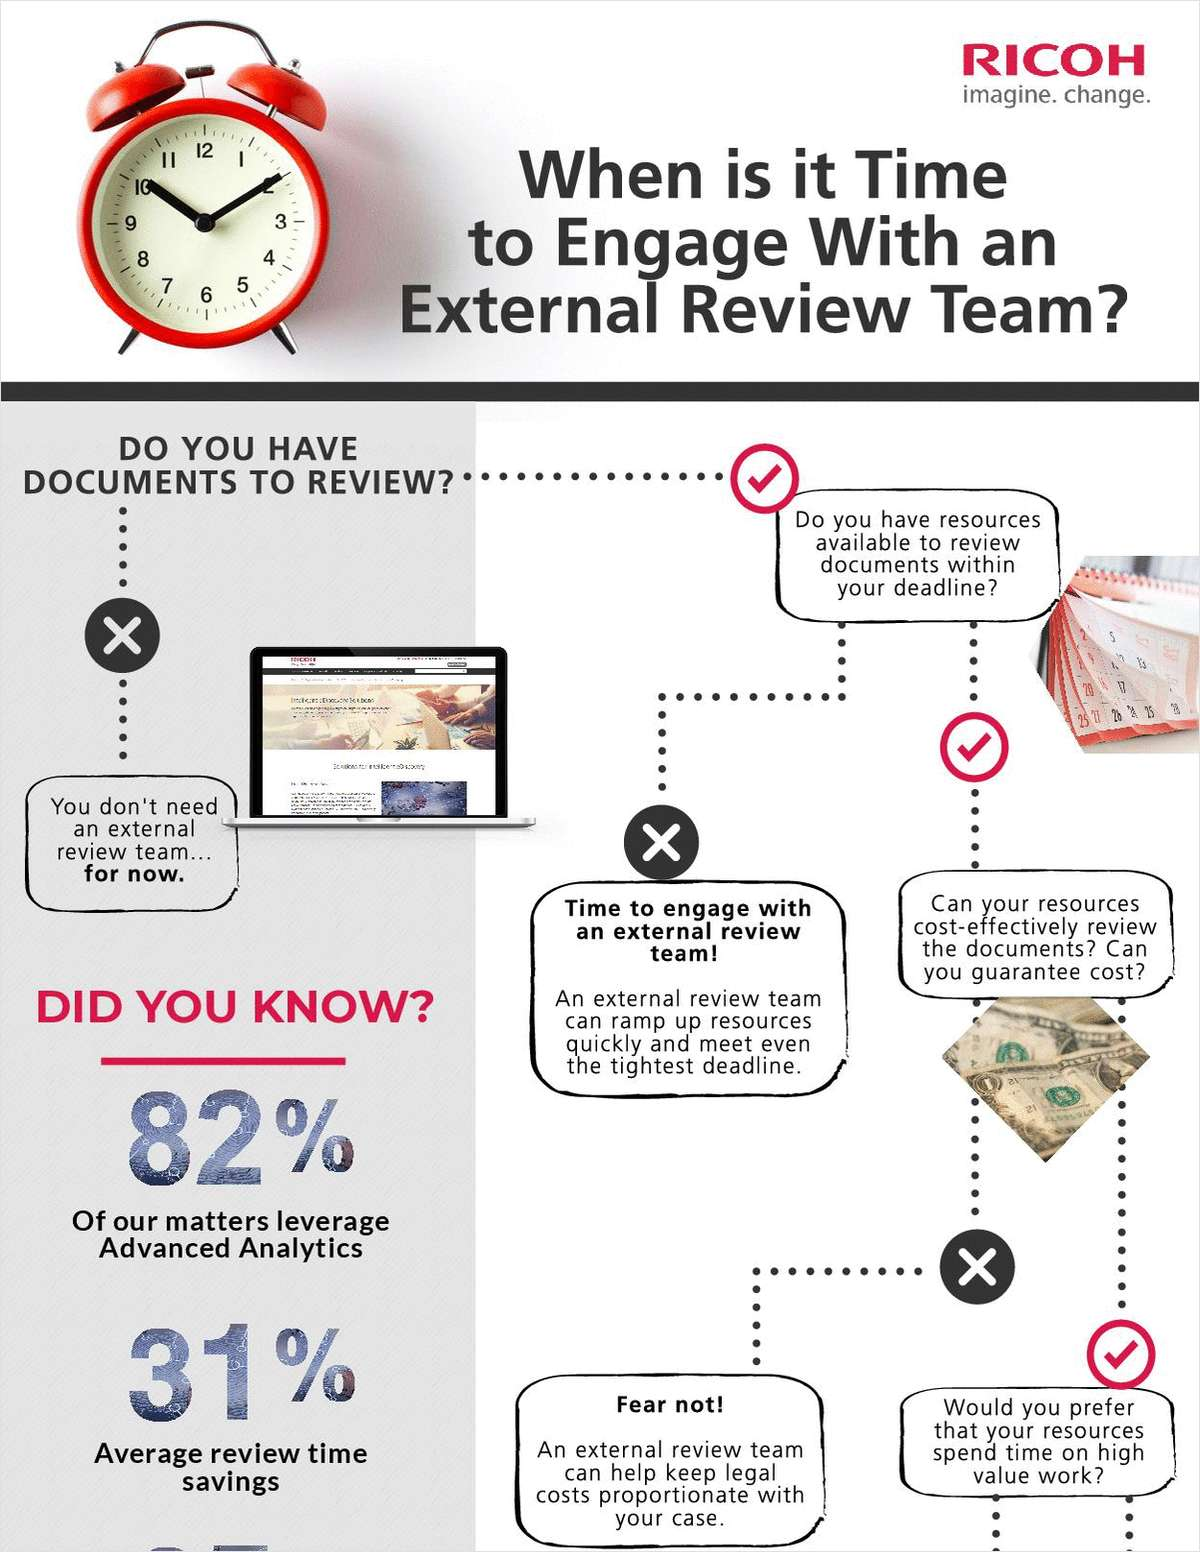 When is it Time to Engage With an External Review Team?